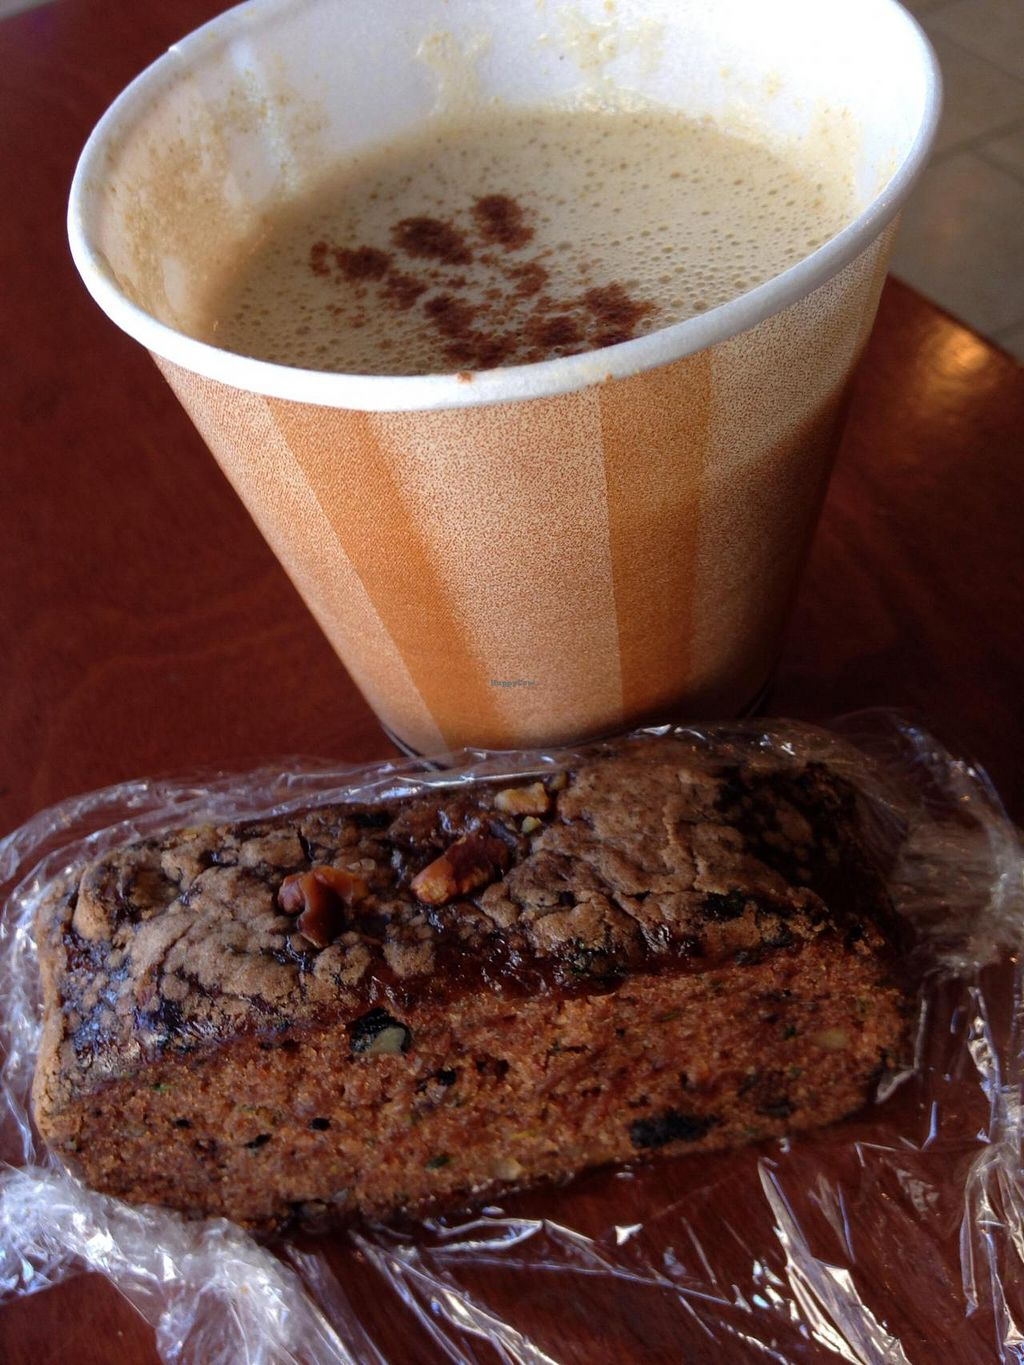 """Photo of CLOSED: Flaxella  by <a href=""""/members/profile/cookiem"""">cookiem</a> <br/>Flax almond latte and zucchini vegan bread <br/> April 21, 2014  - <a href='/contact/abuse/image/30165/68211'>Report</a>"""